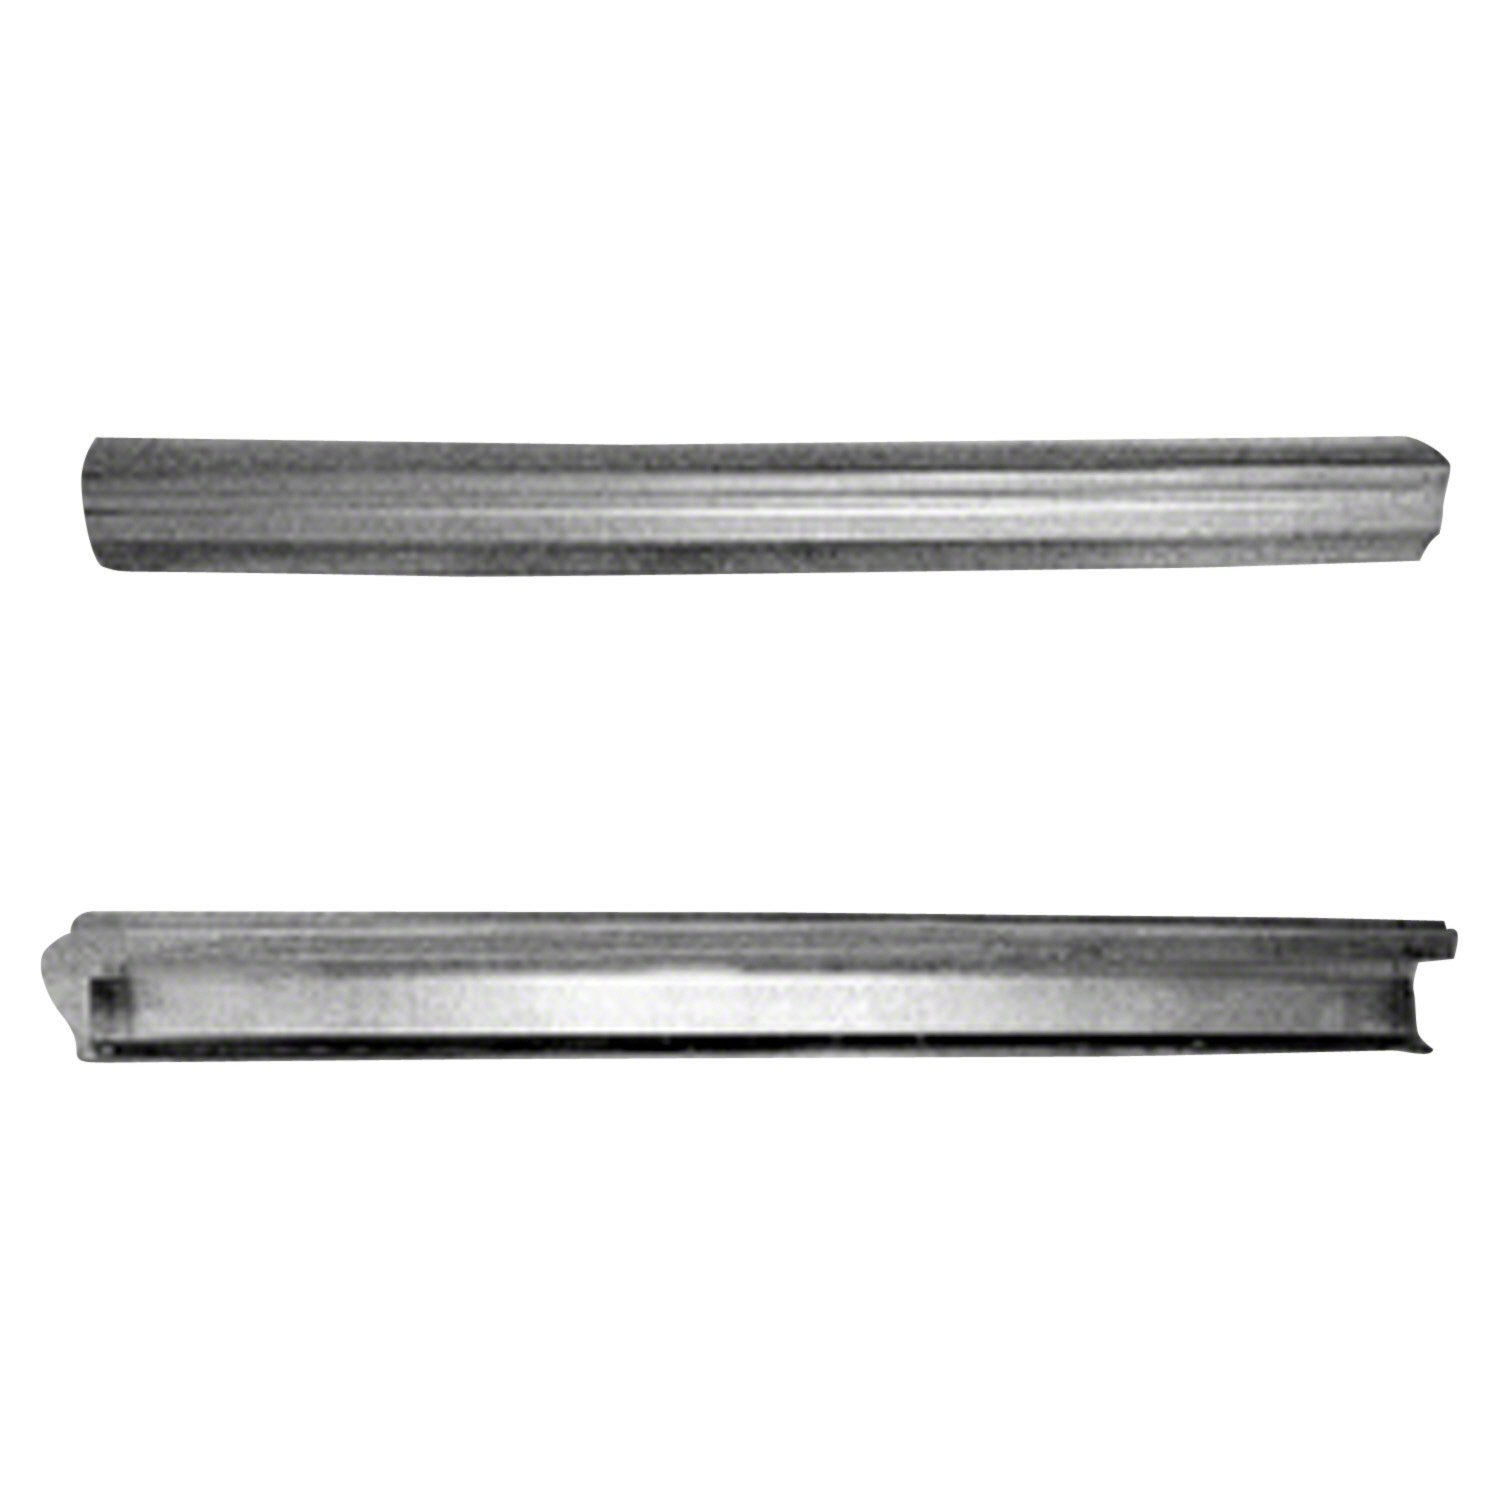 Crash Parts Plus Crash Parts Plus CH1102168 Rear Bumper Face Bar for Jeep Cherokee, Wagoneer